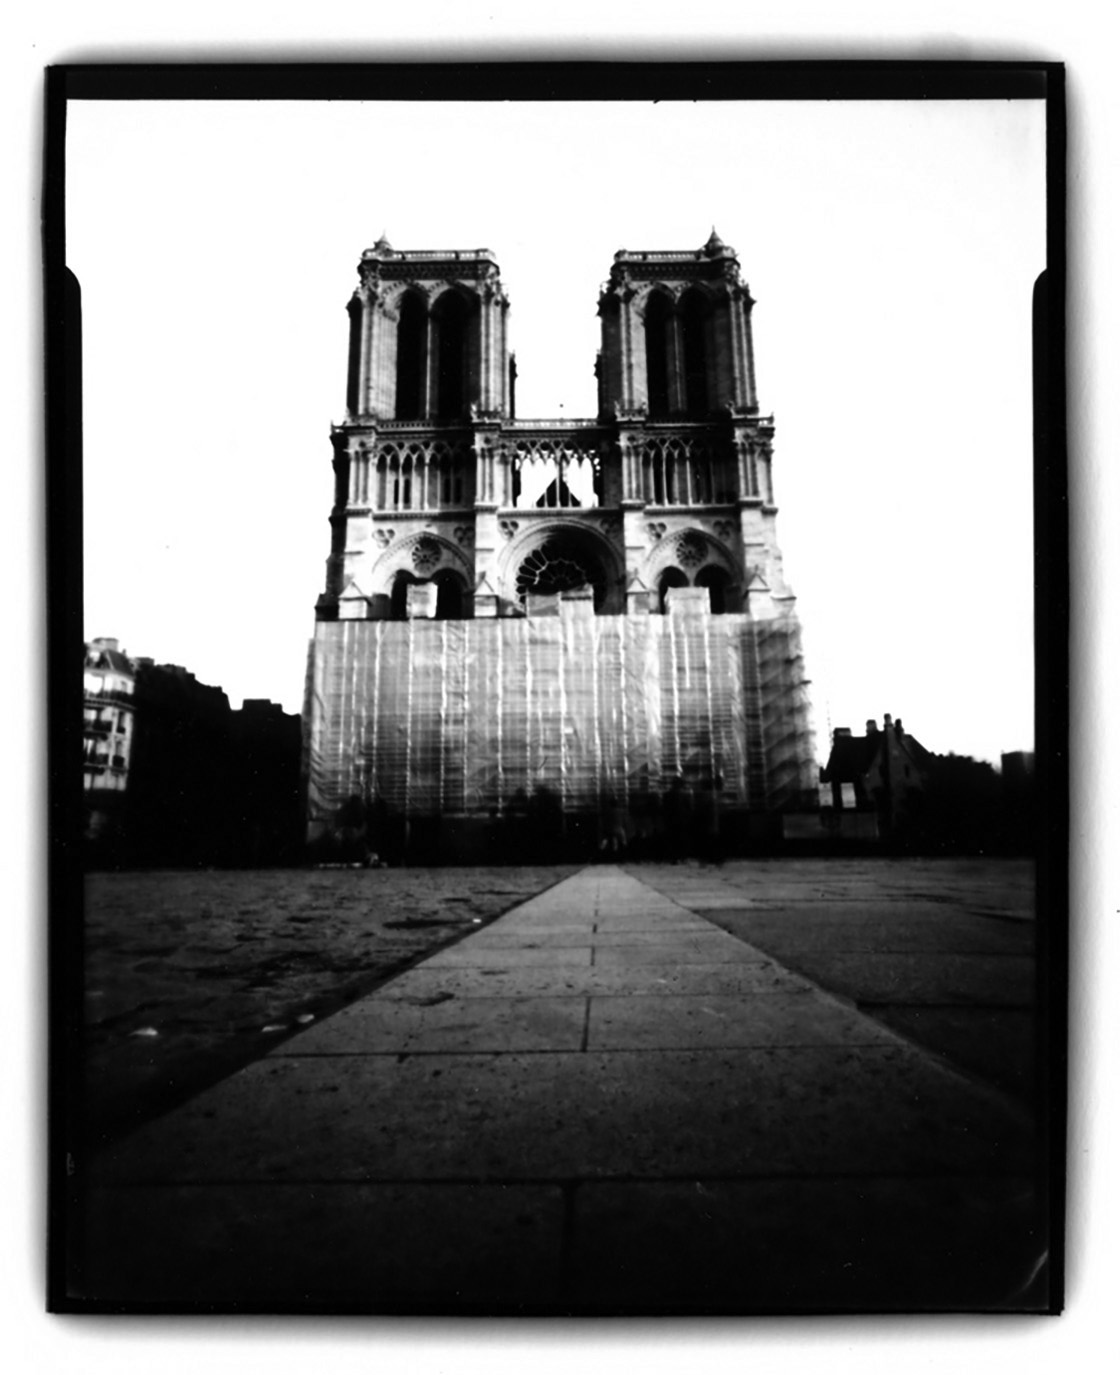 Notre Dame, Paris, 1998 - Dianne Bos at Kostuik Gallery